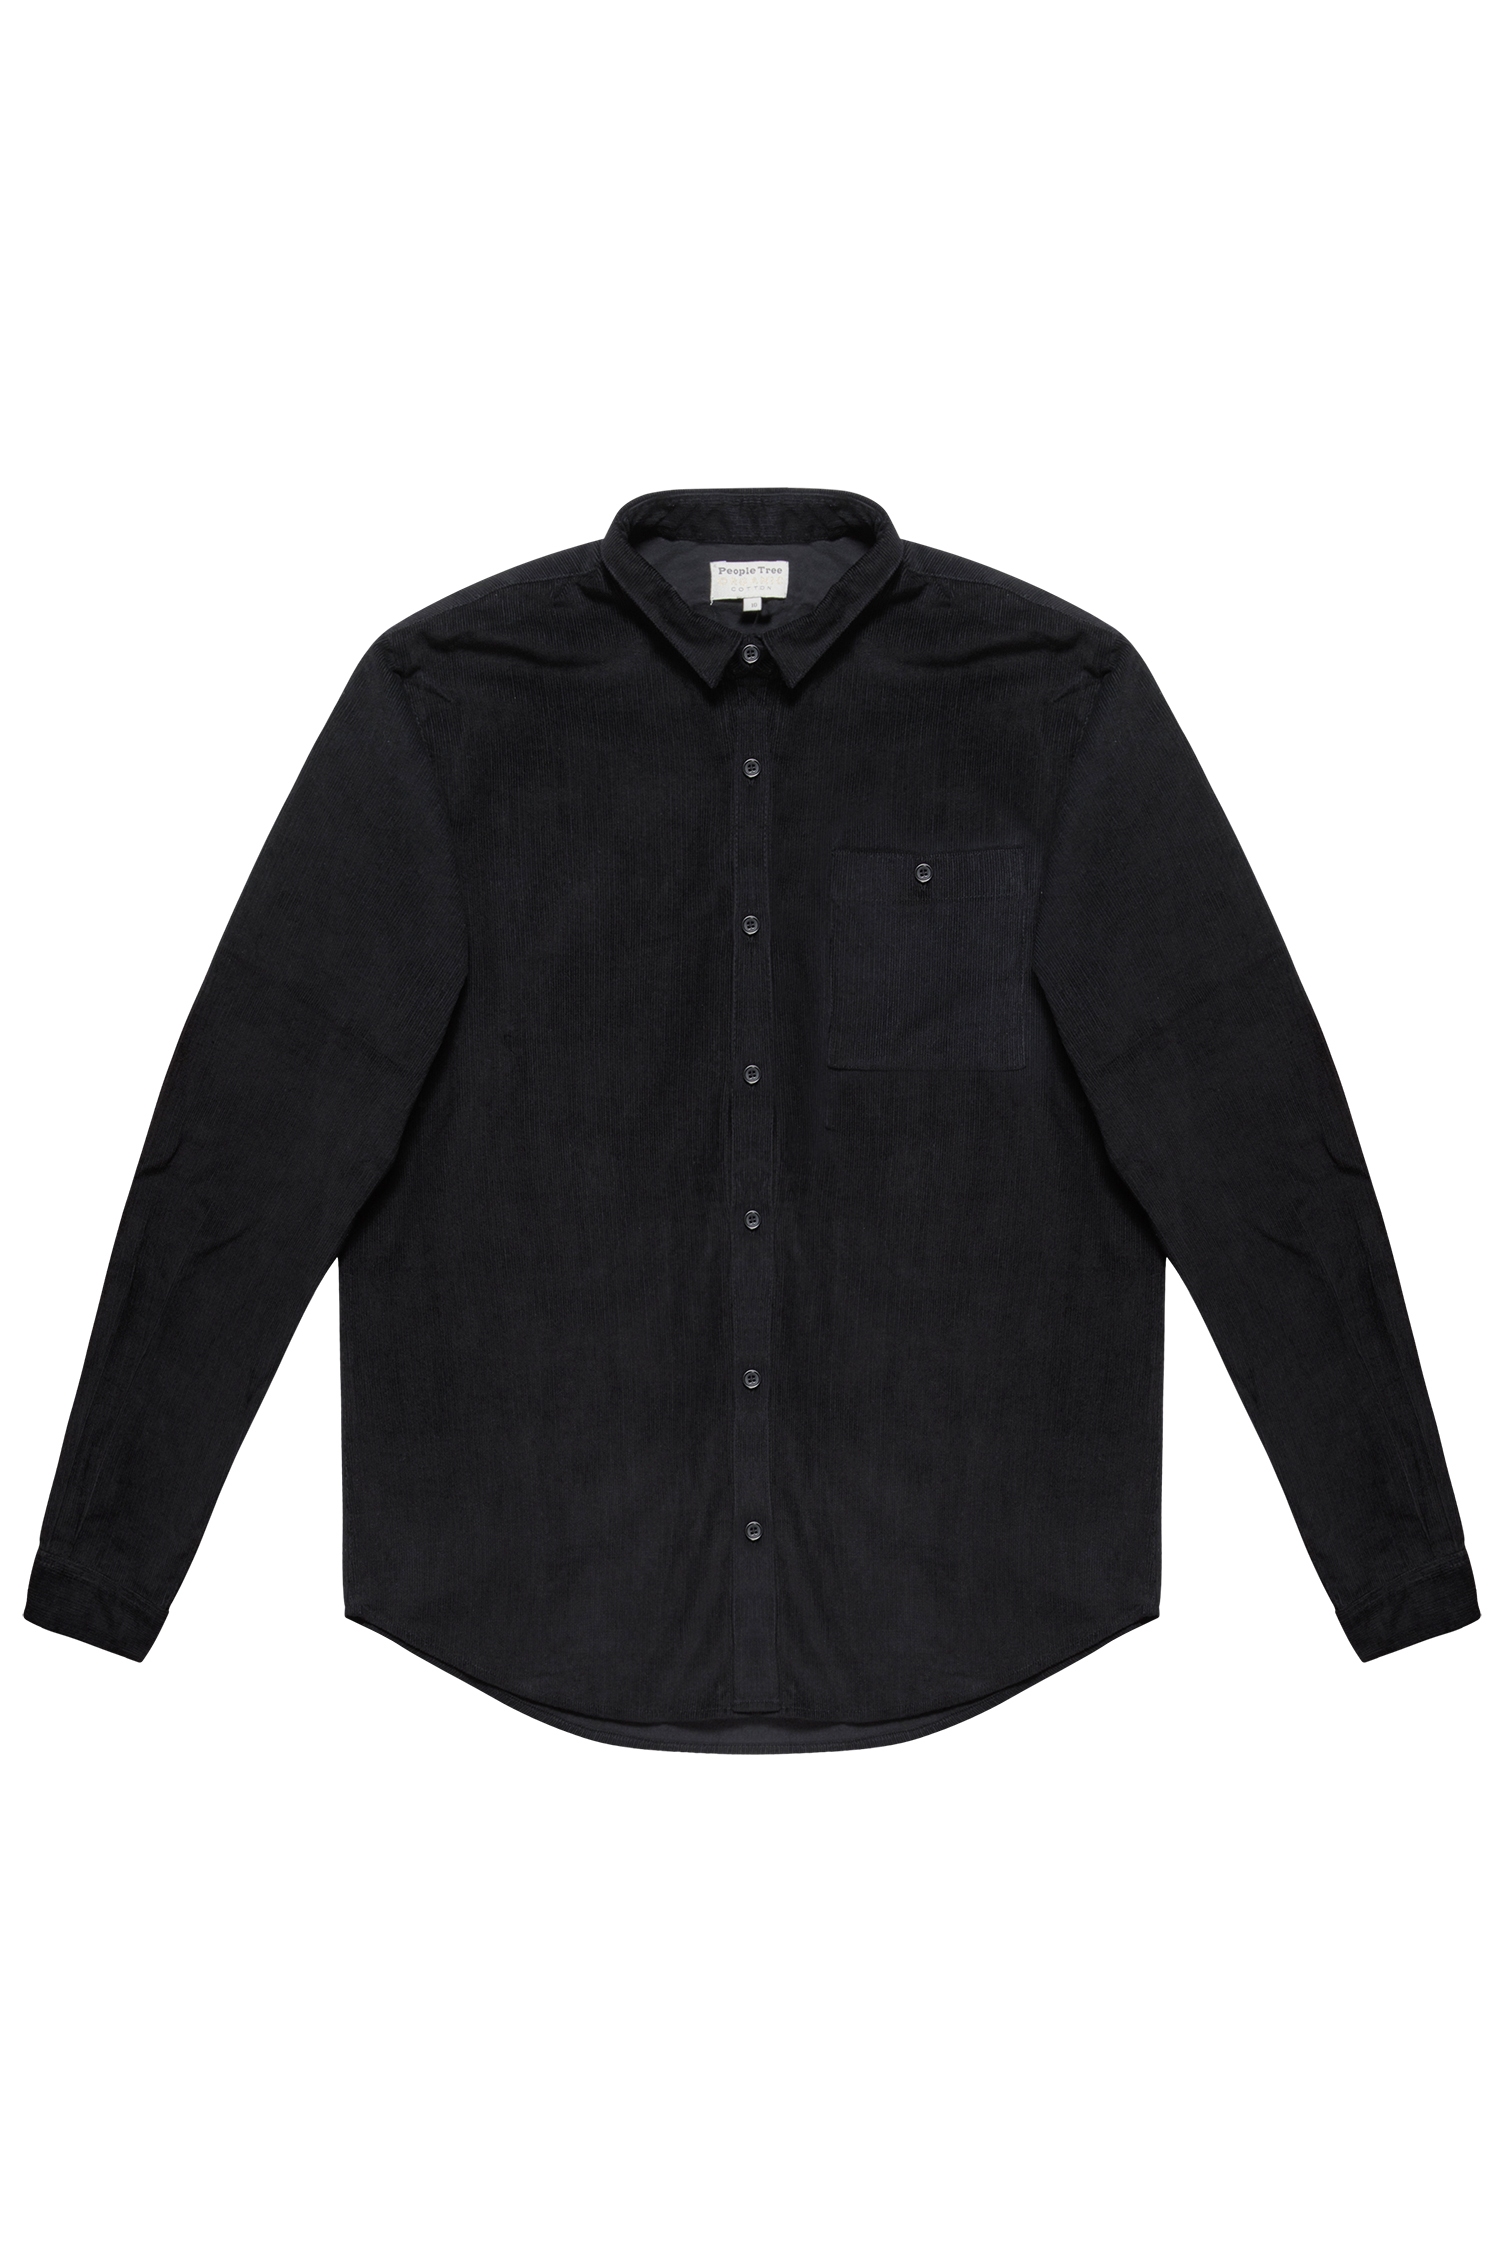 cole-corduroy-shirt-in-black-4dcd819d2284.jpg